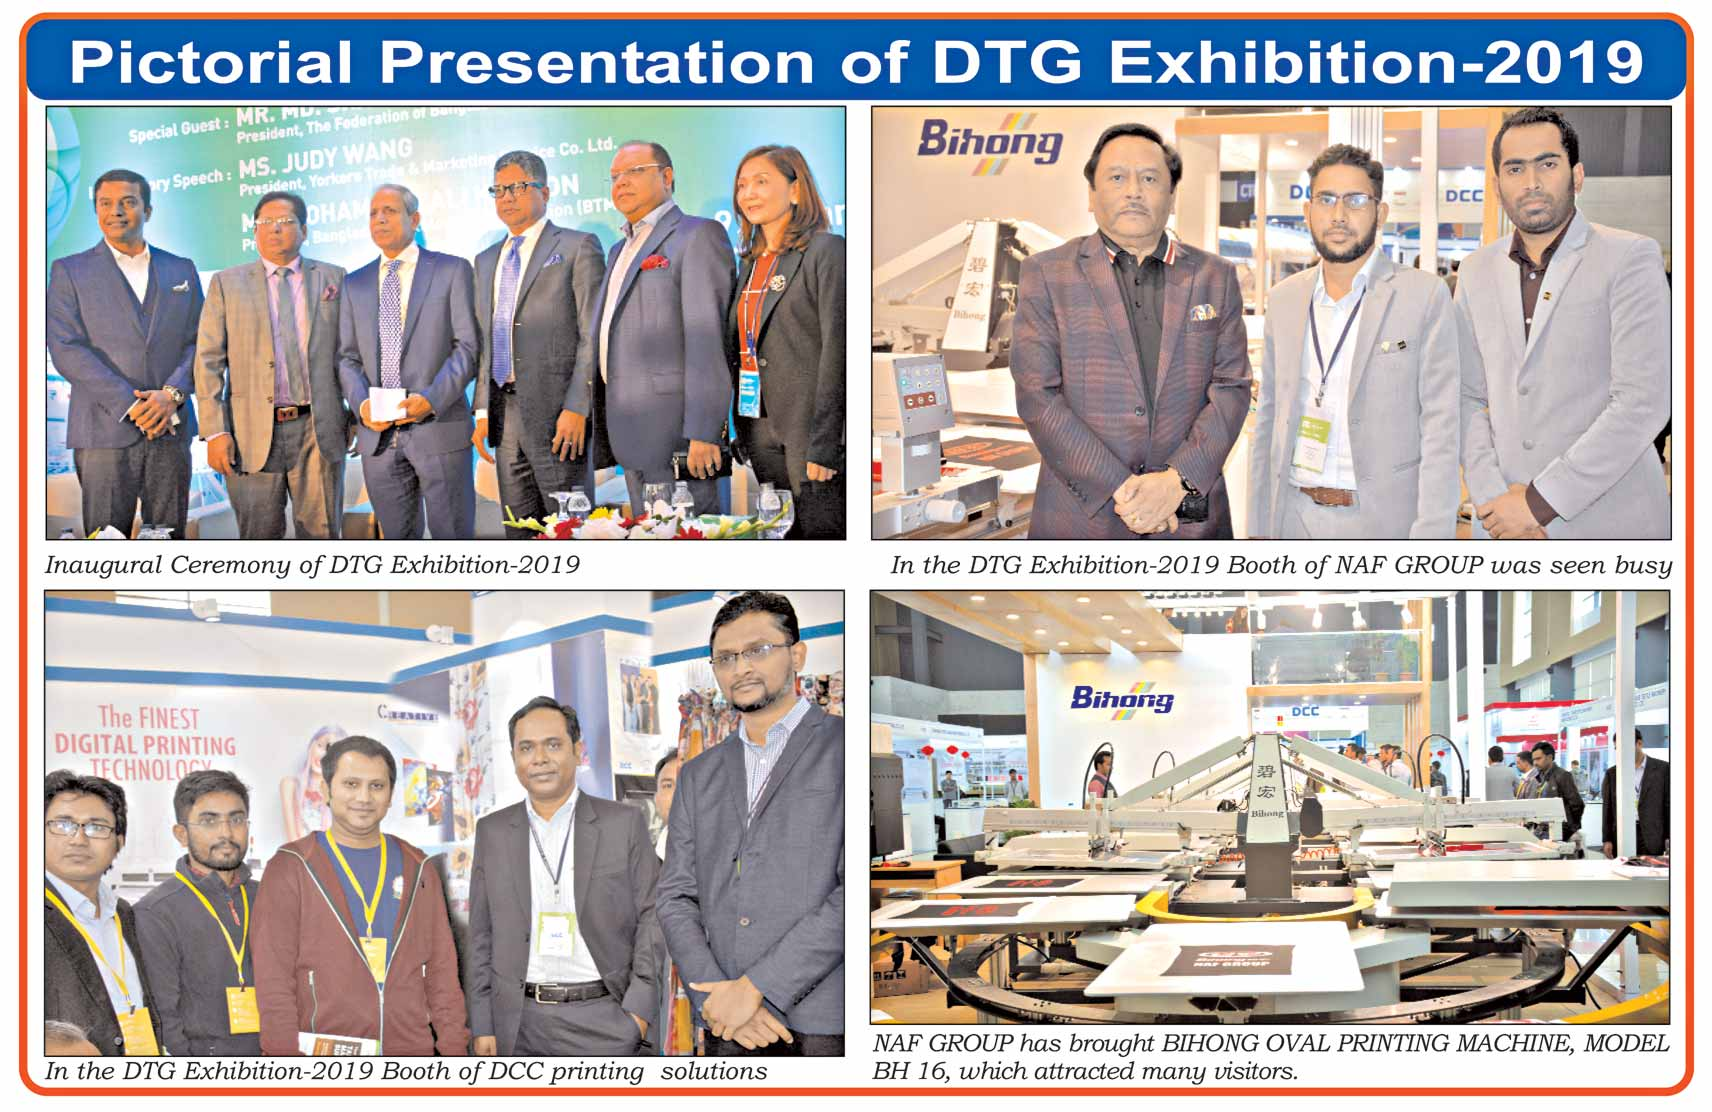 Pictorial Presentation of DTG Exhibition-2019